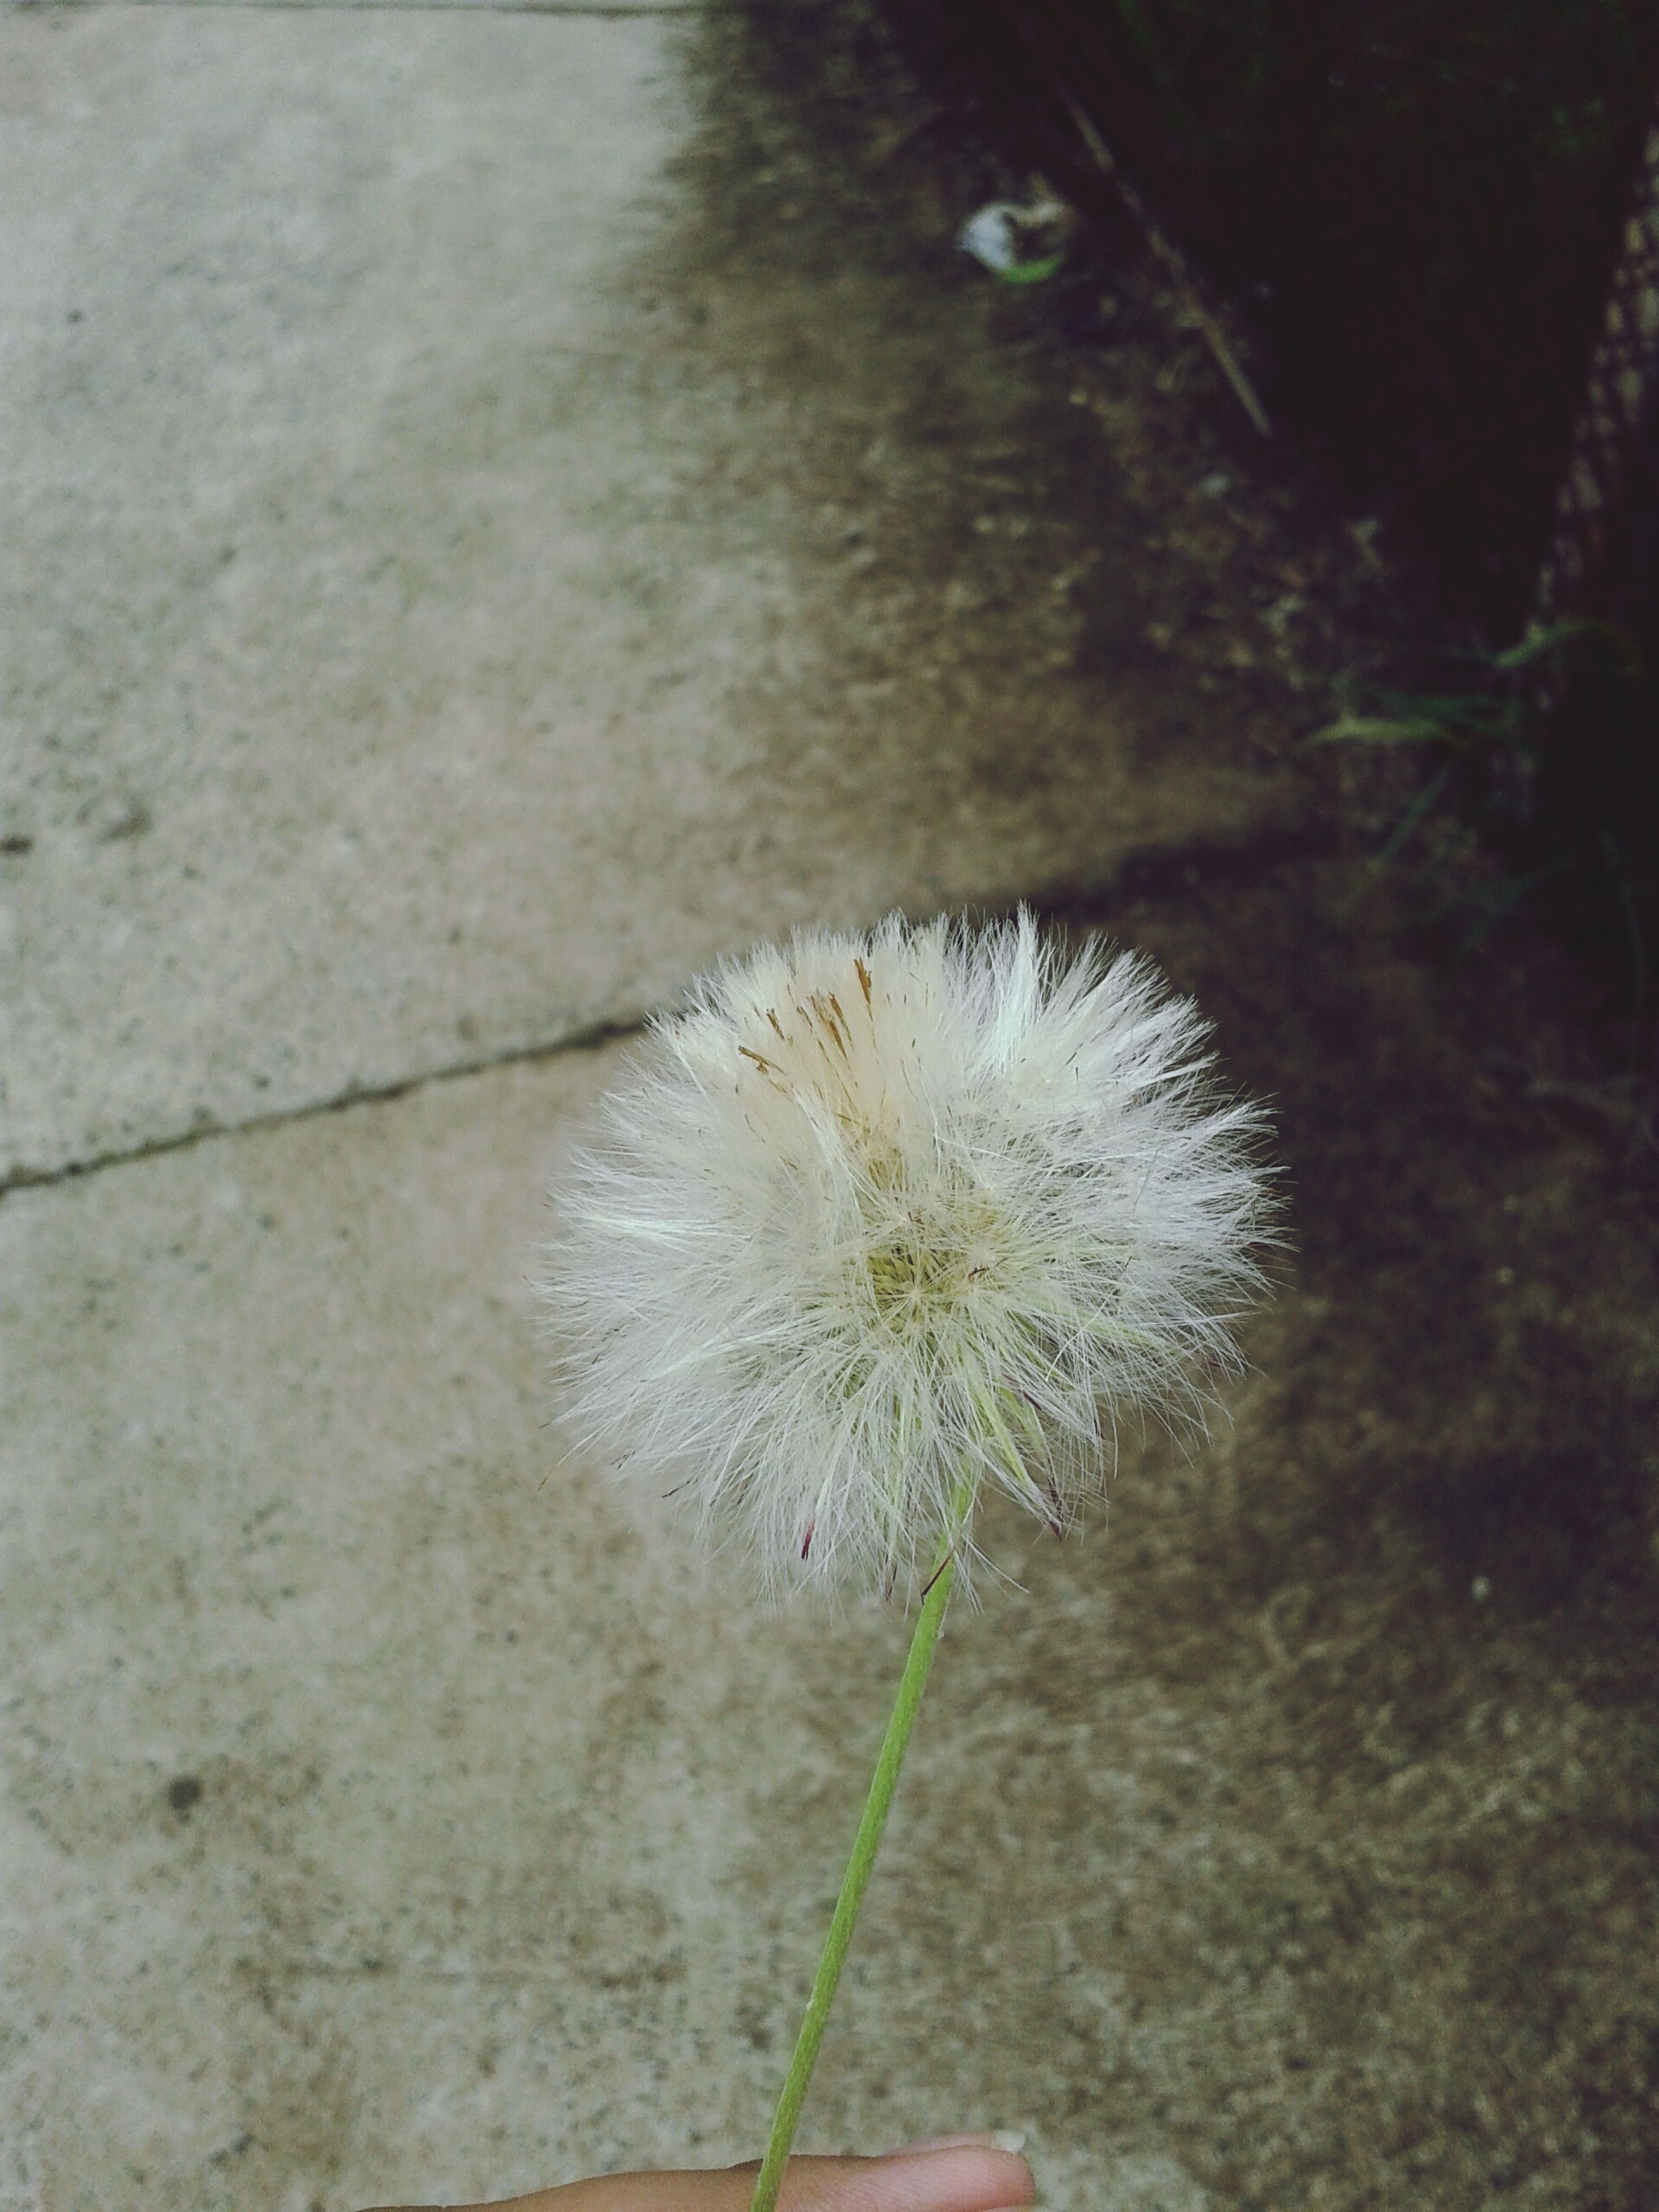 flower, dandelion, fragility, single flower, flower head, freshness, growth, close-up, white color, nature, beauty in nature, high angle view, plant, softness, water, stem, uncultivated, petal, outdoors, day